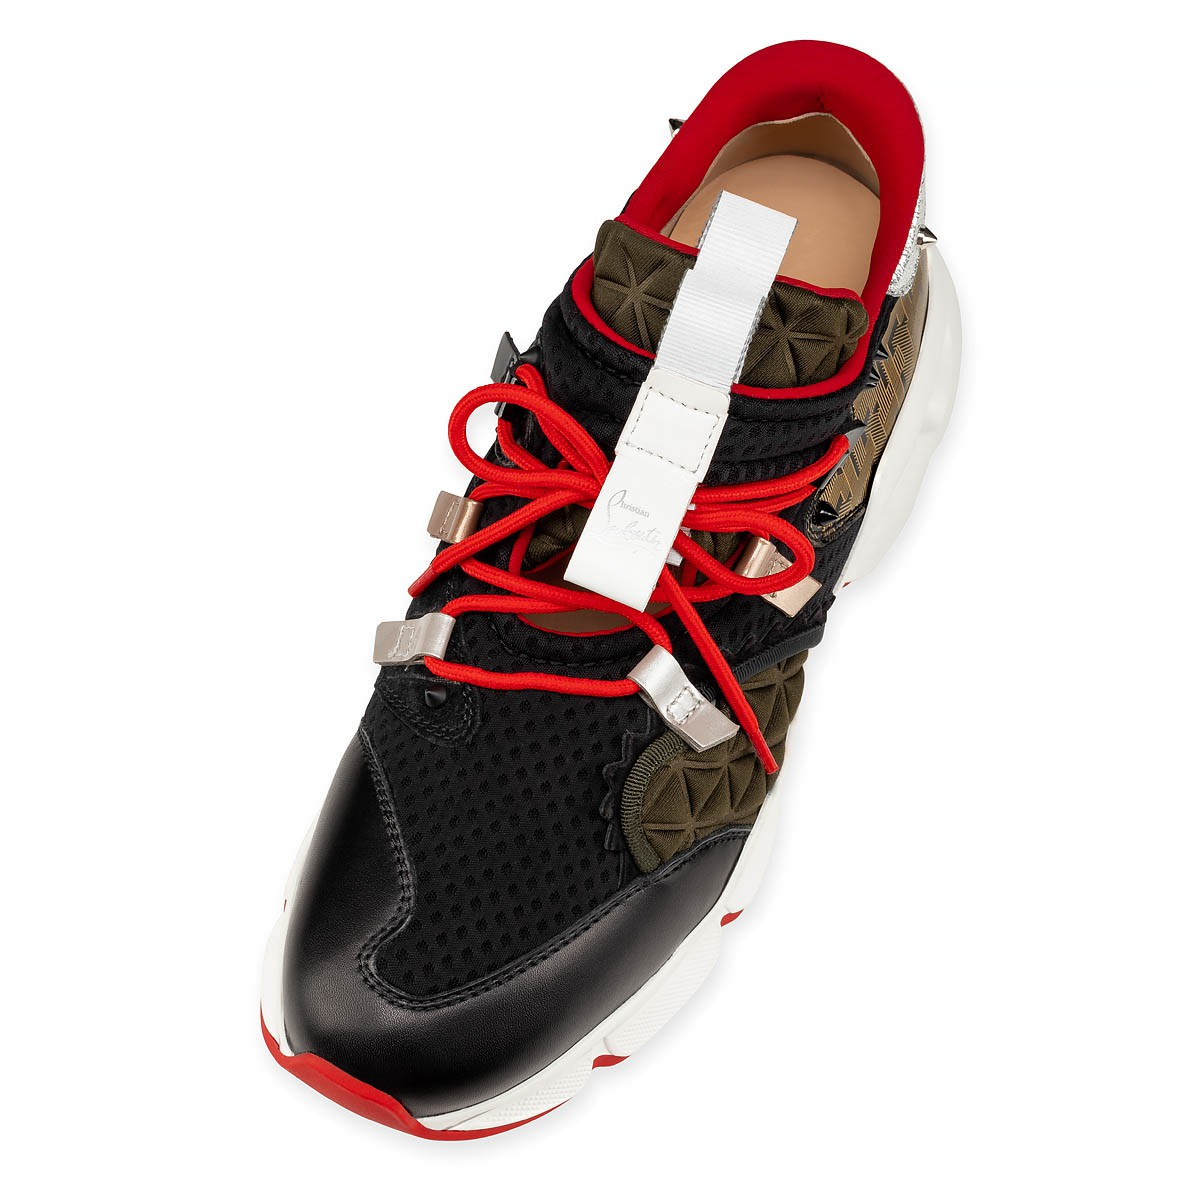 Souliers - Red-runner - Christian Louboutin